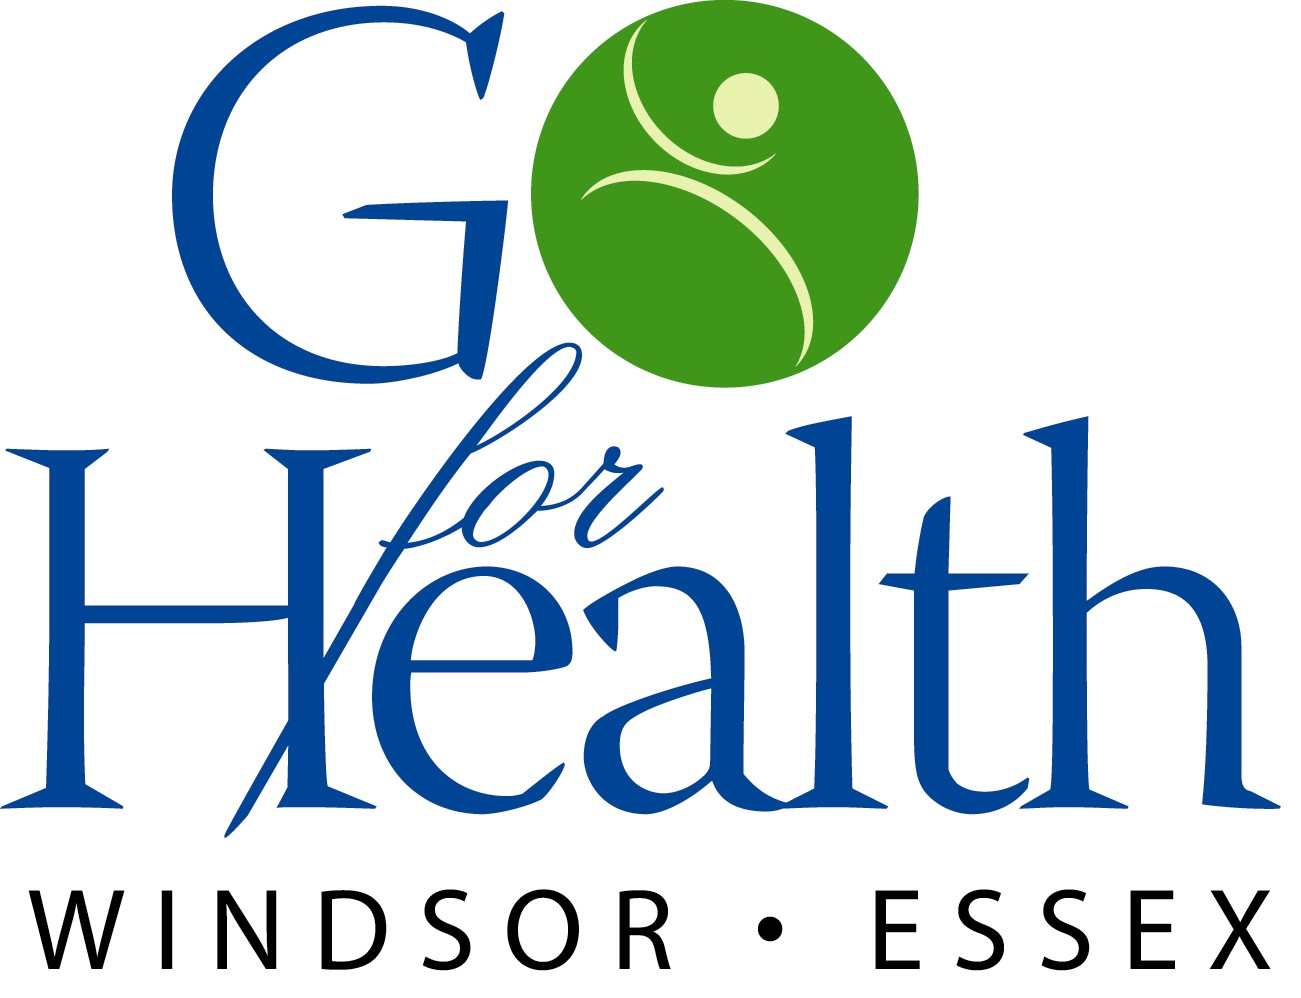 Go For Health logo.